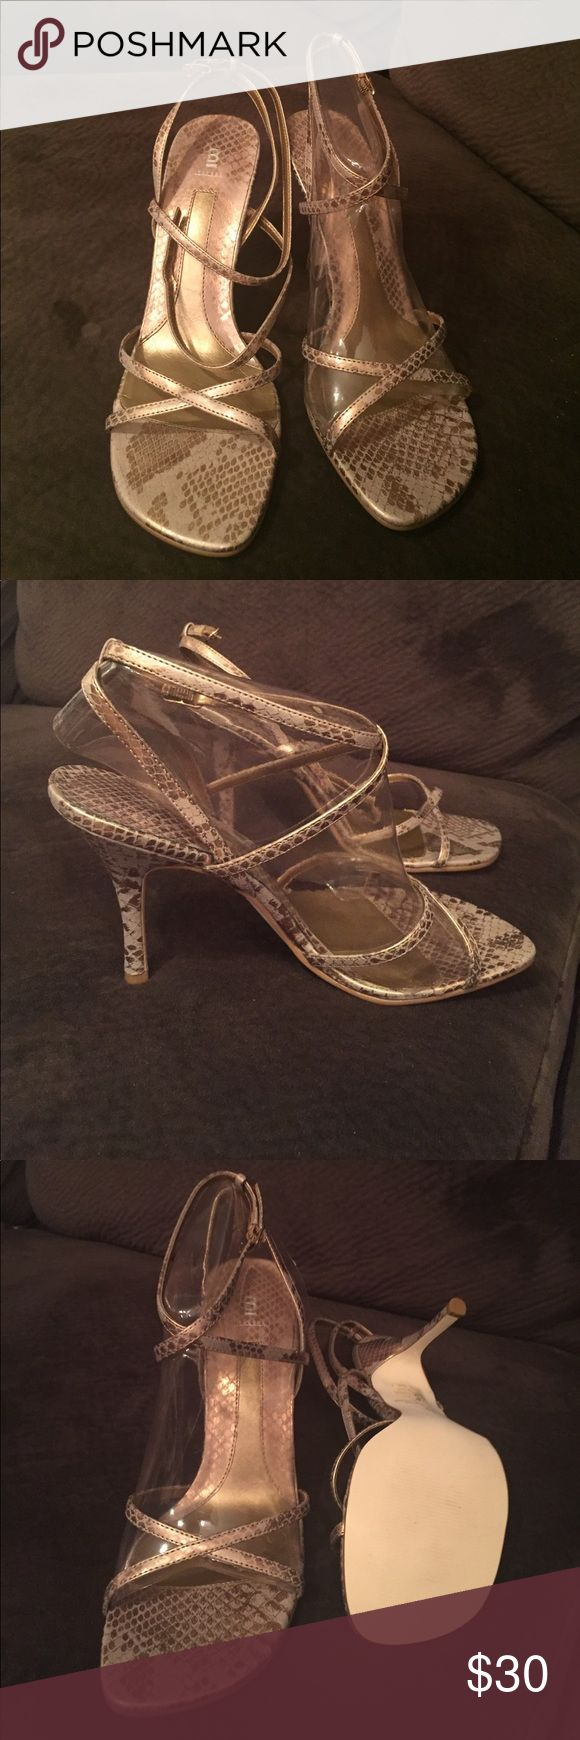 Bakers Shelly 2 gold snake print strappy sandal Bakers Shelly 2 gold strappy sandal. Size 10 Never worn Bakers Shoes Sandals